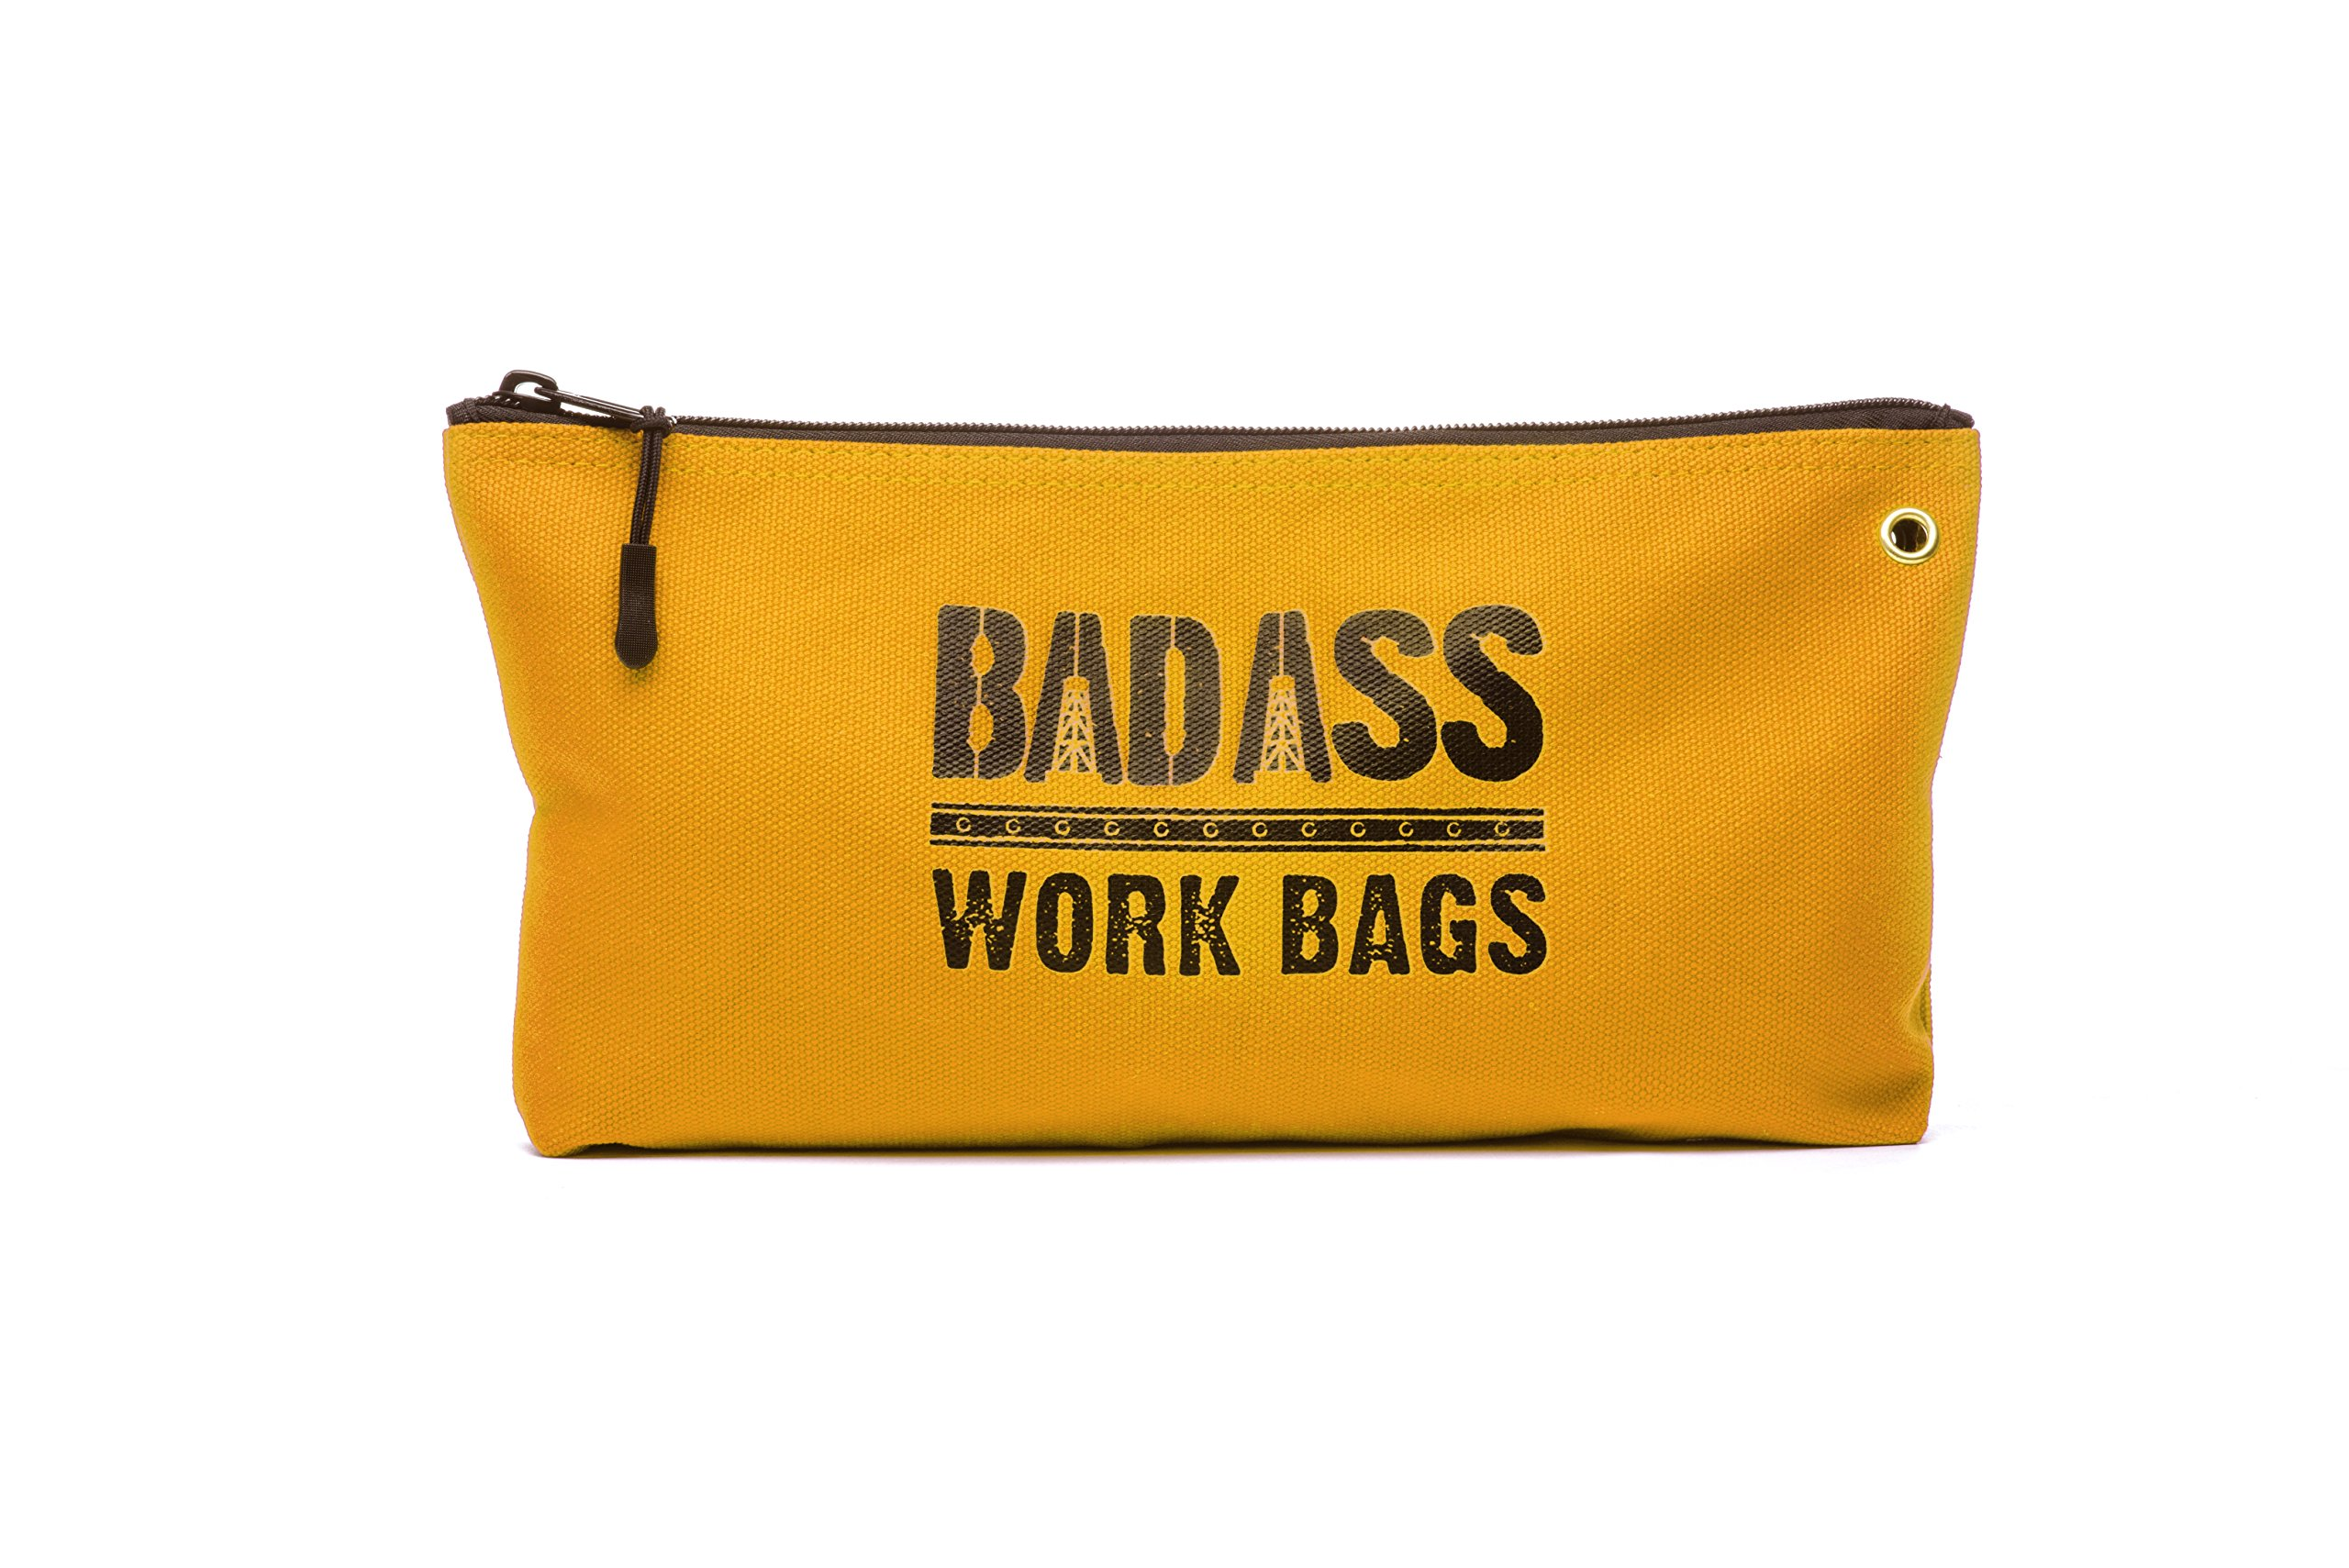 Bad Ass Work Gear   4-Pack of Heavy Duty 20 oz. Canvas Zipper Tool Bags in 4 colors   Toughest Utility Bag by Bad Ass Work Gear (Image #5)